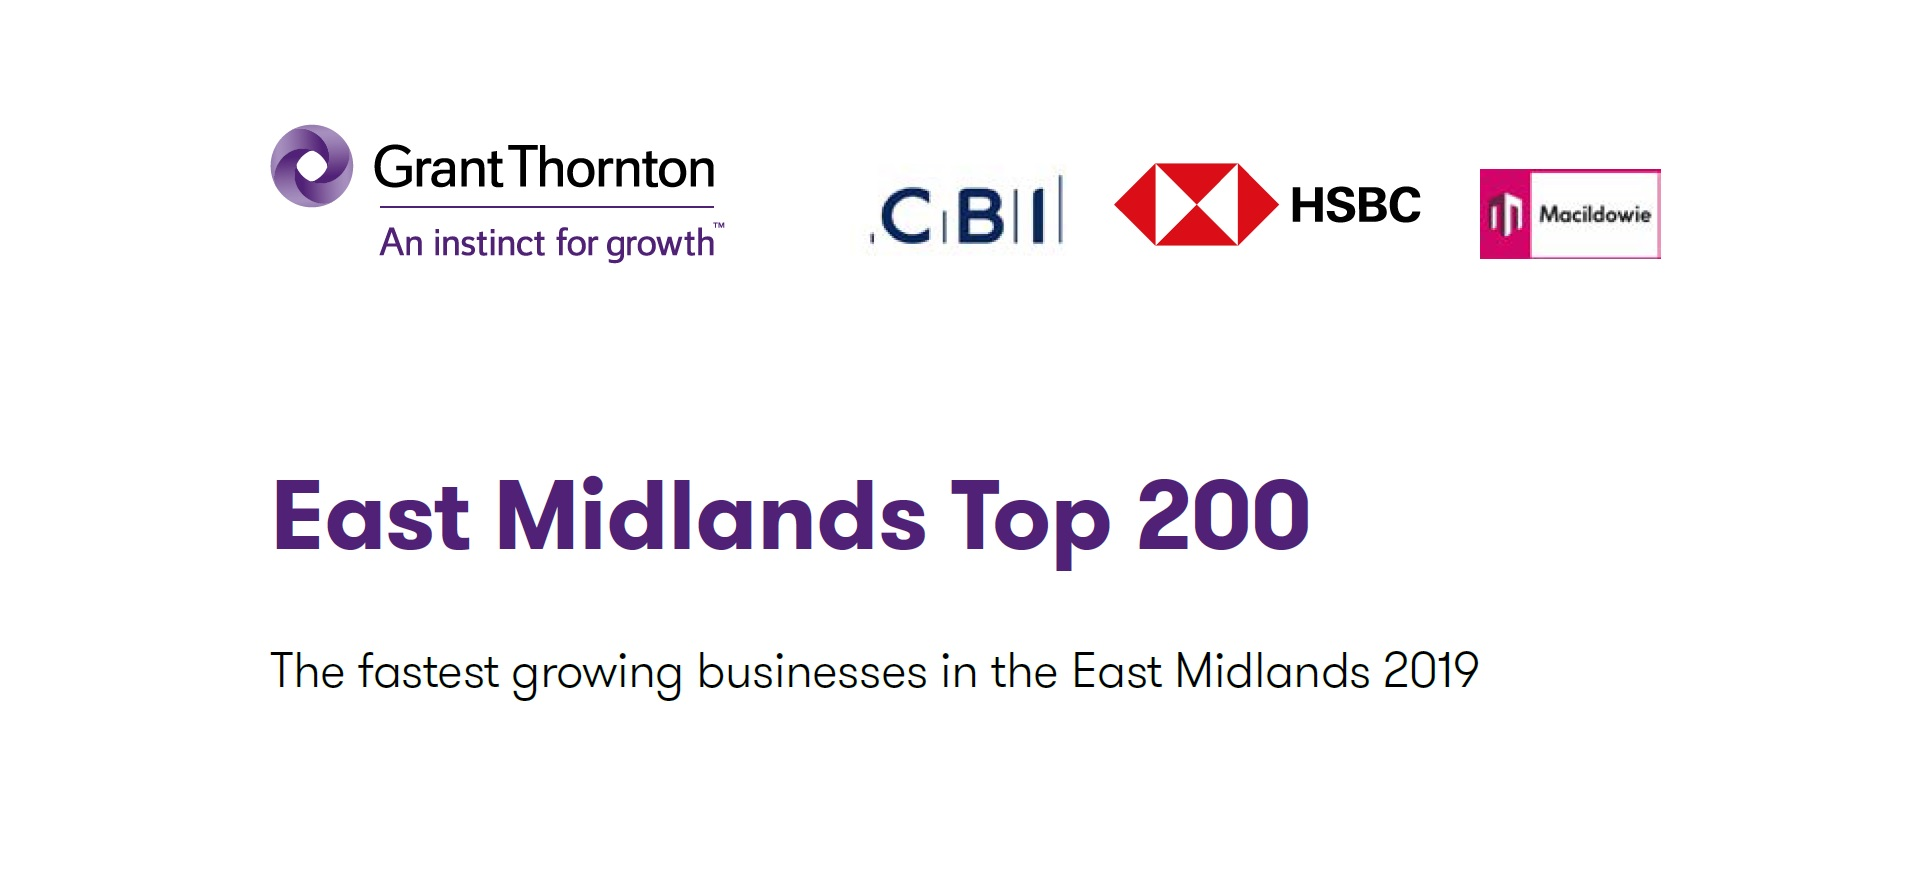 AW Group listed in Top 200 Fastest Growing Business in East Midlands